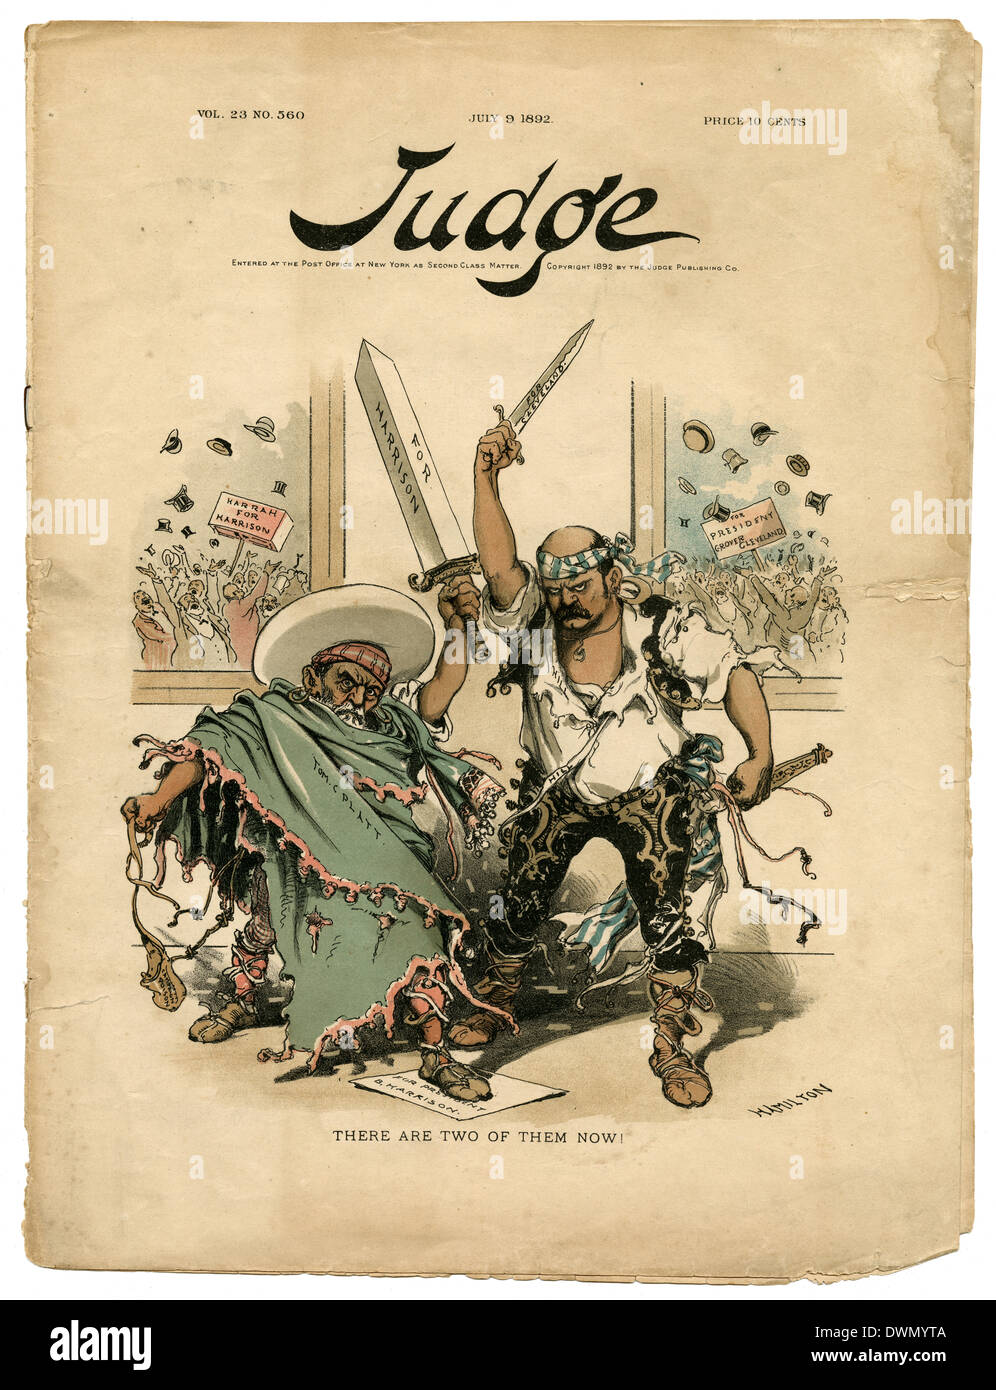 July 9, 1892 issue of Judge, a weekly satirical magazine published in the United States from 1881 to 1947. - Stock Image